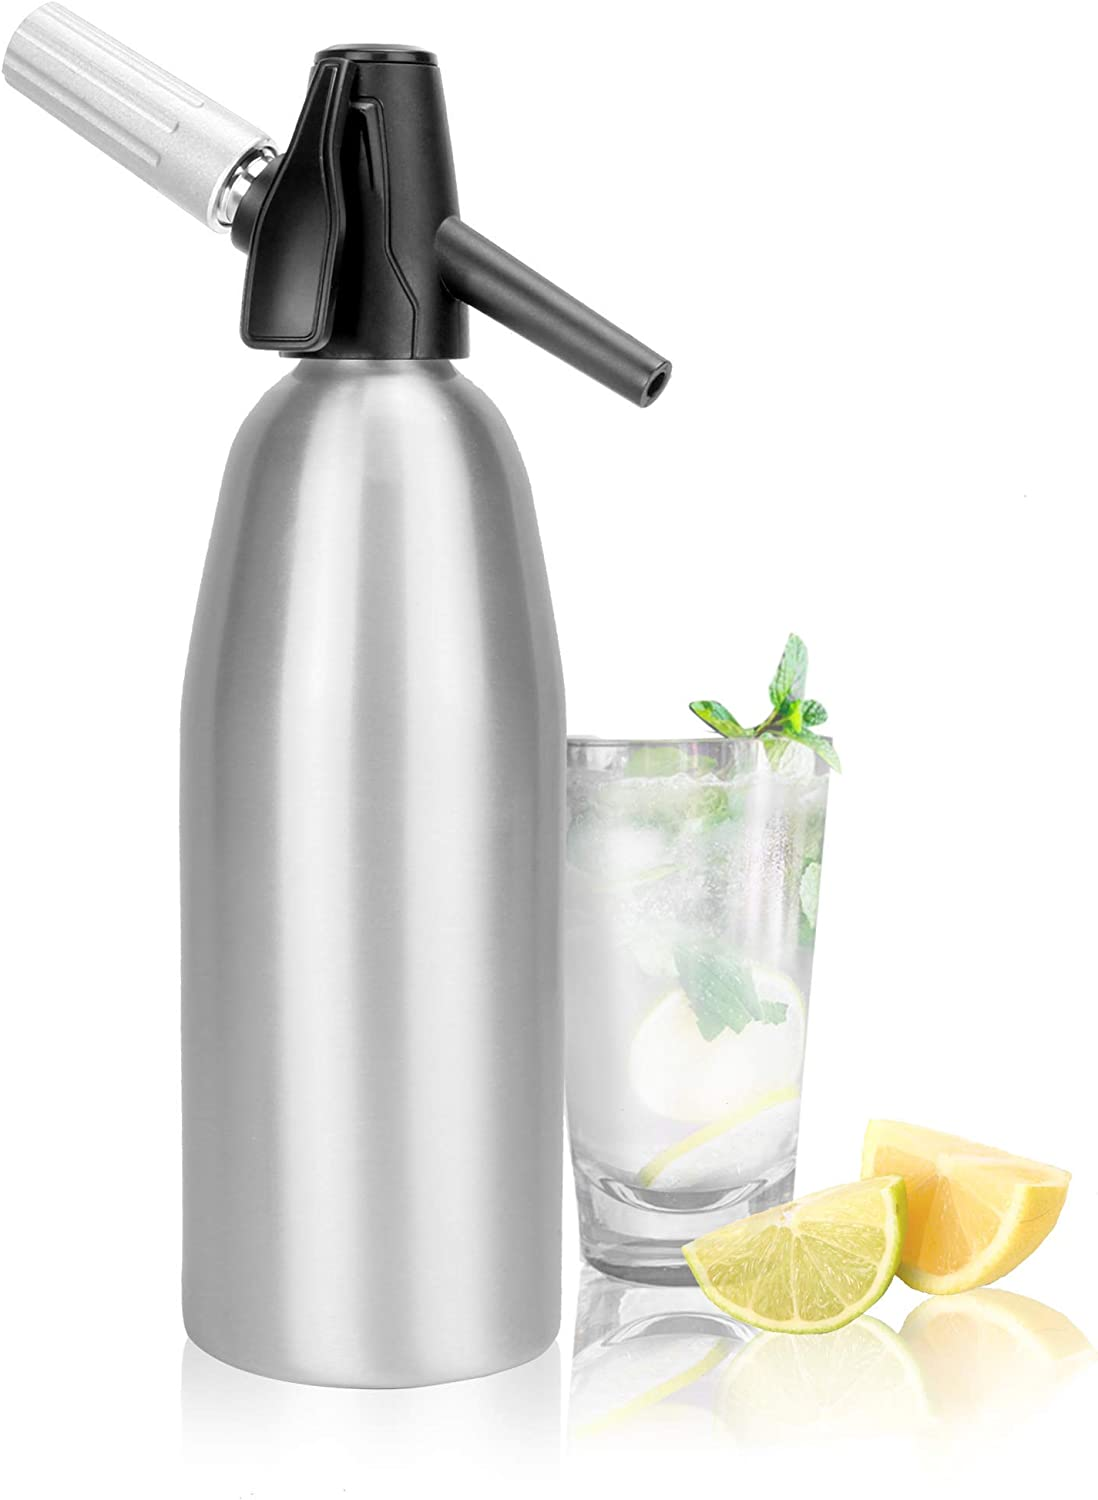 1L Aluminium Soda Siphon | Fizz Maker | Soda Machine | Seltzer Water Creator | Carbonated Water Dispenser | Fizzy Beverage Maker | Carbonator | M&W